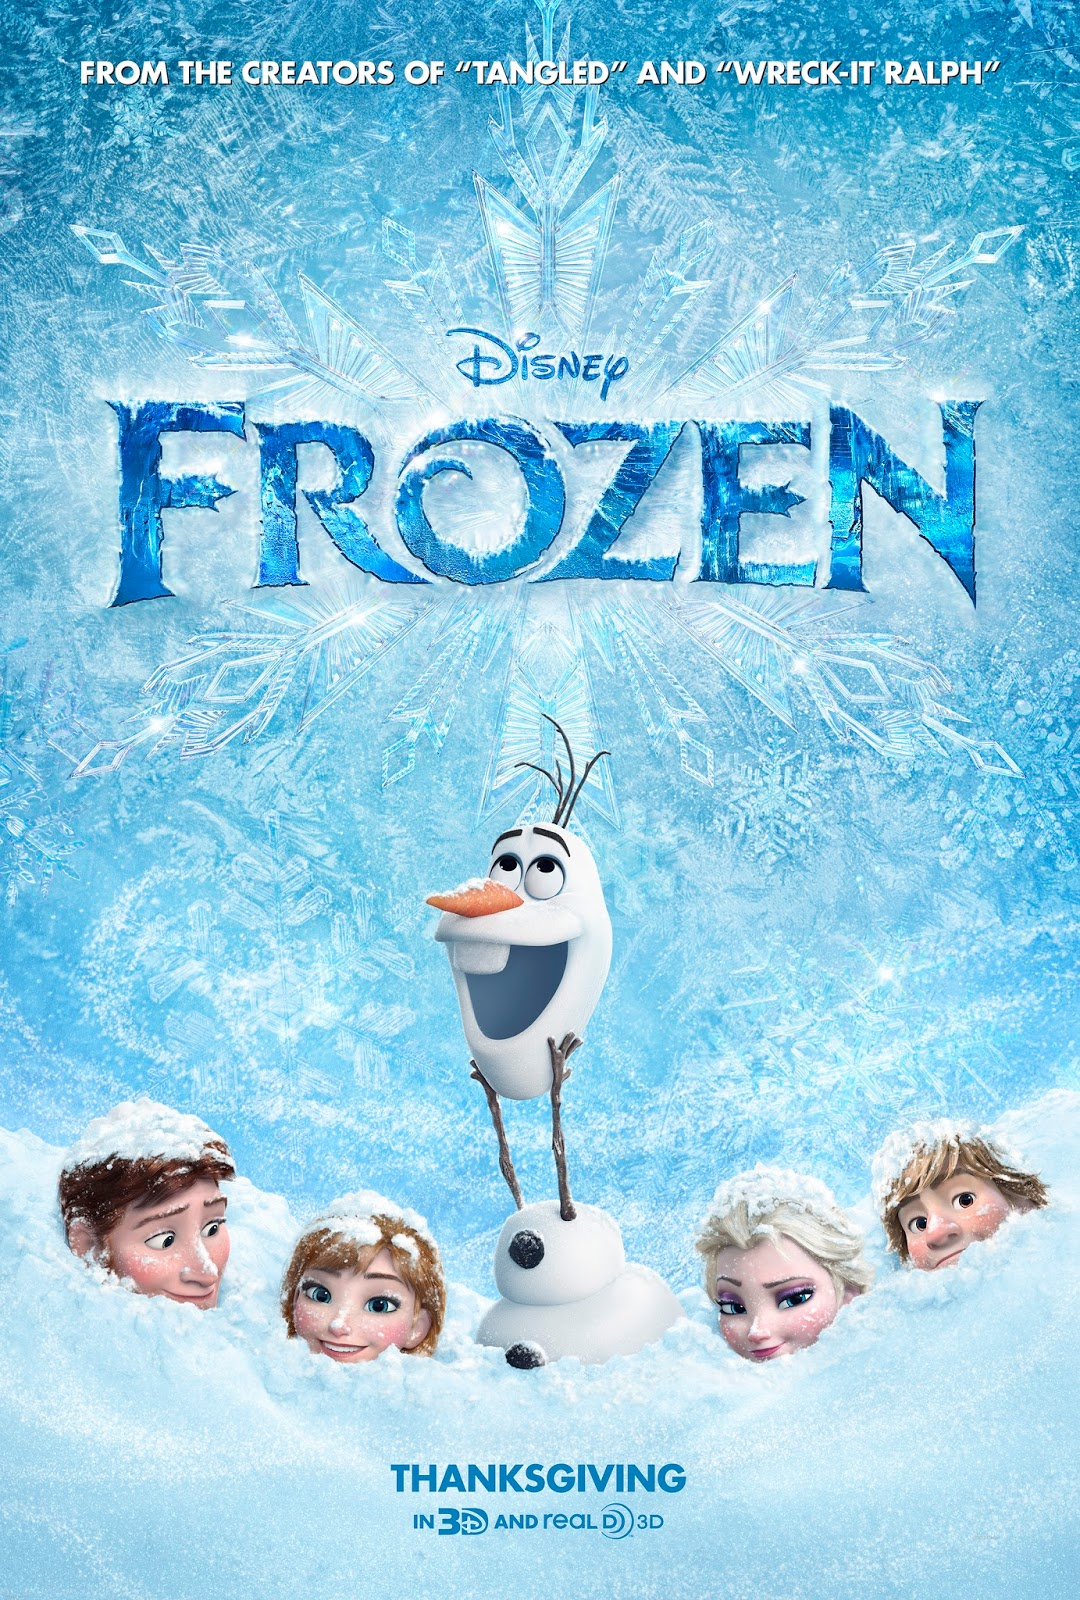 Watch Frozen Official Teaser Trailer (2013) - Disney Animated Movie HD